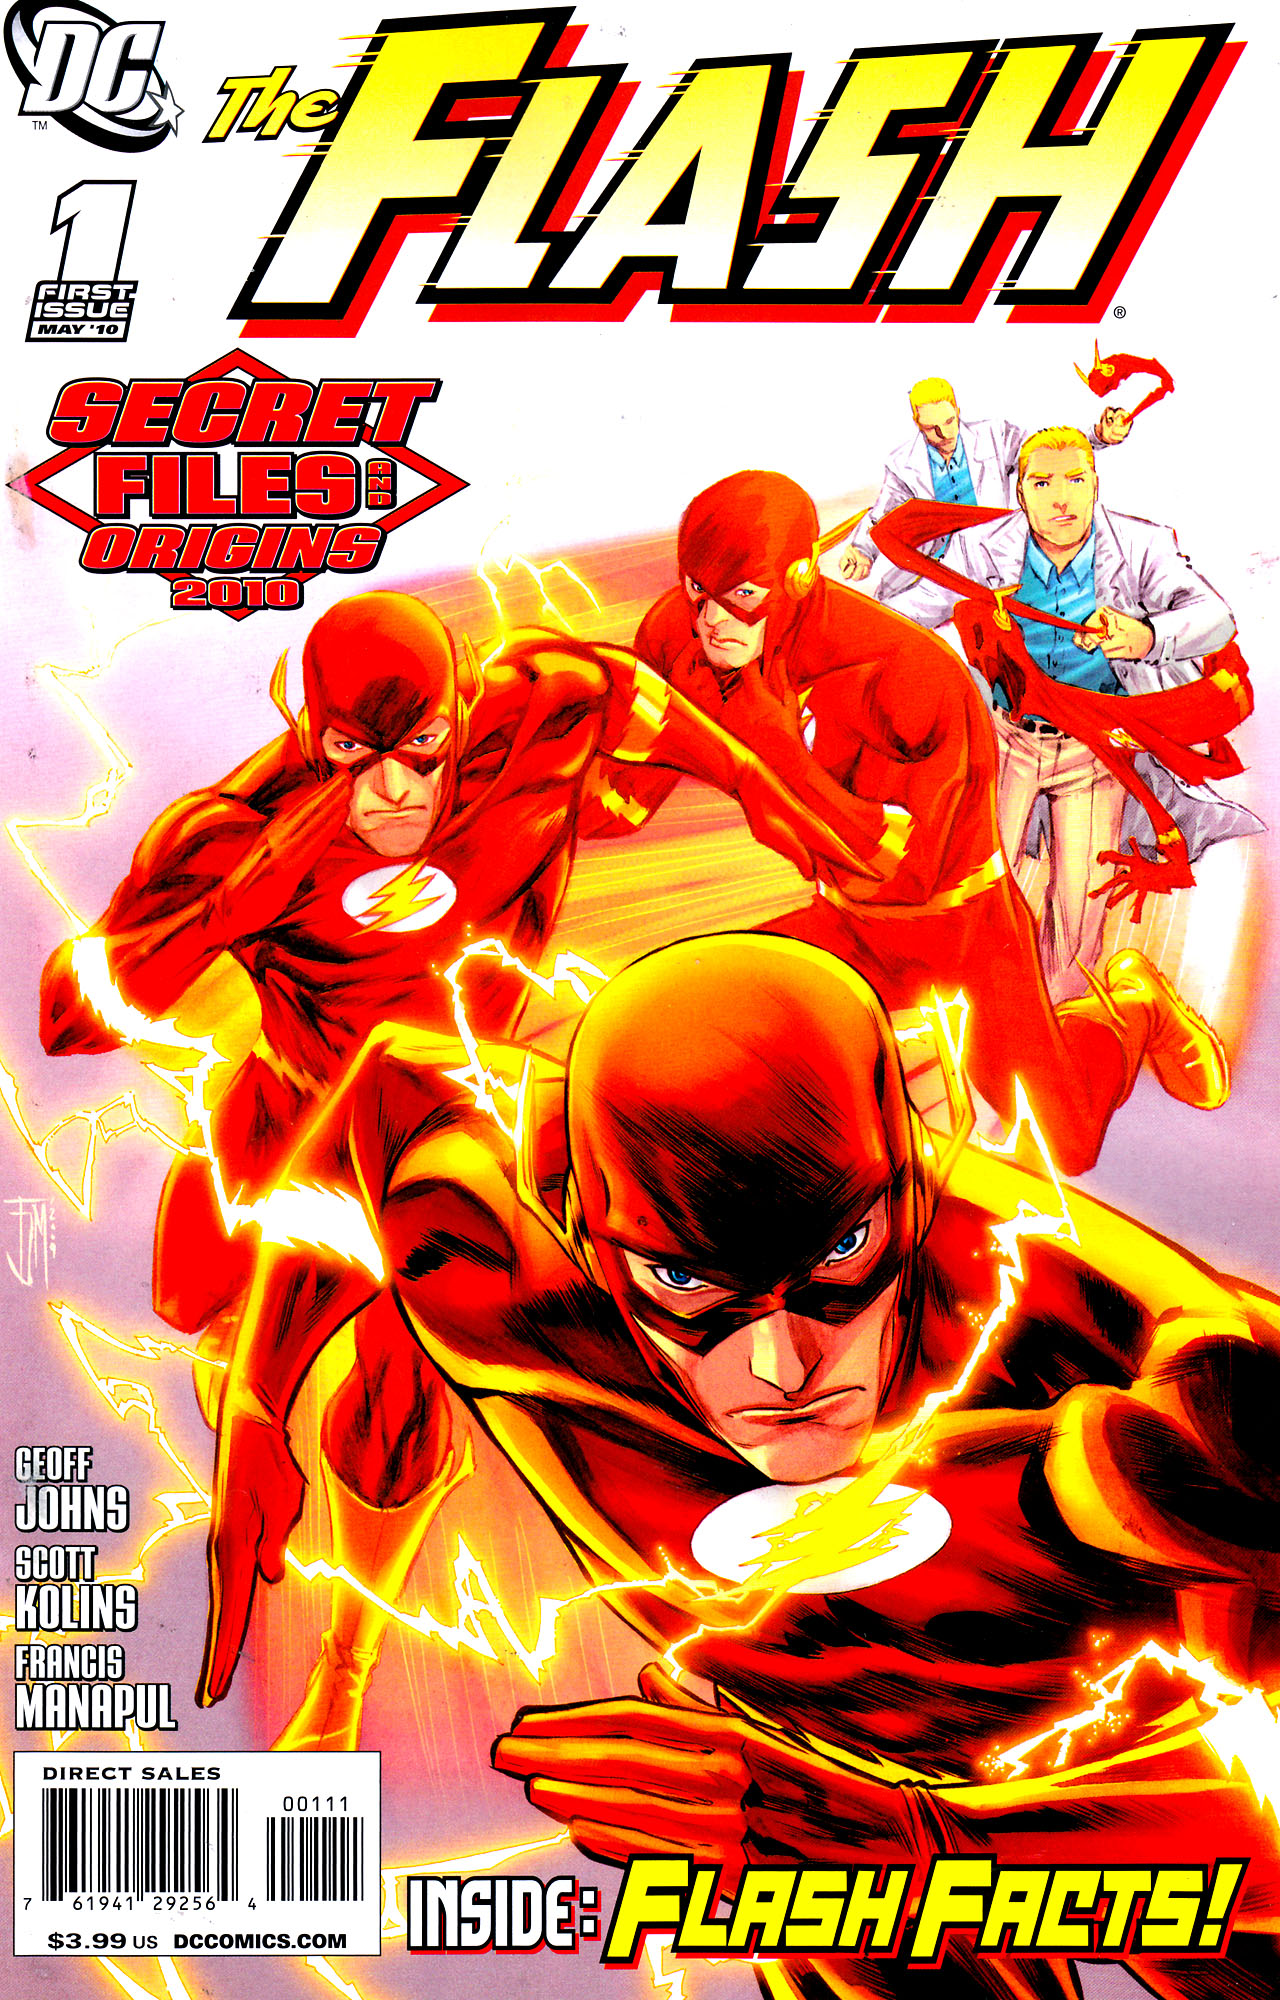 The Flash Secret Files and Origins 2010 Full Page 1